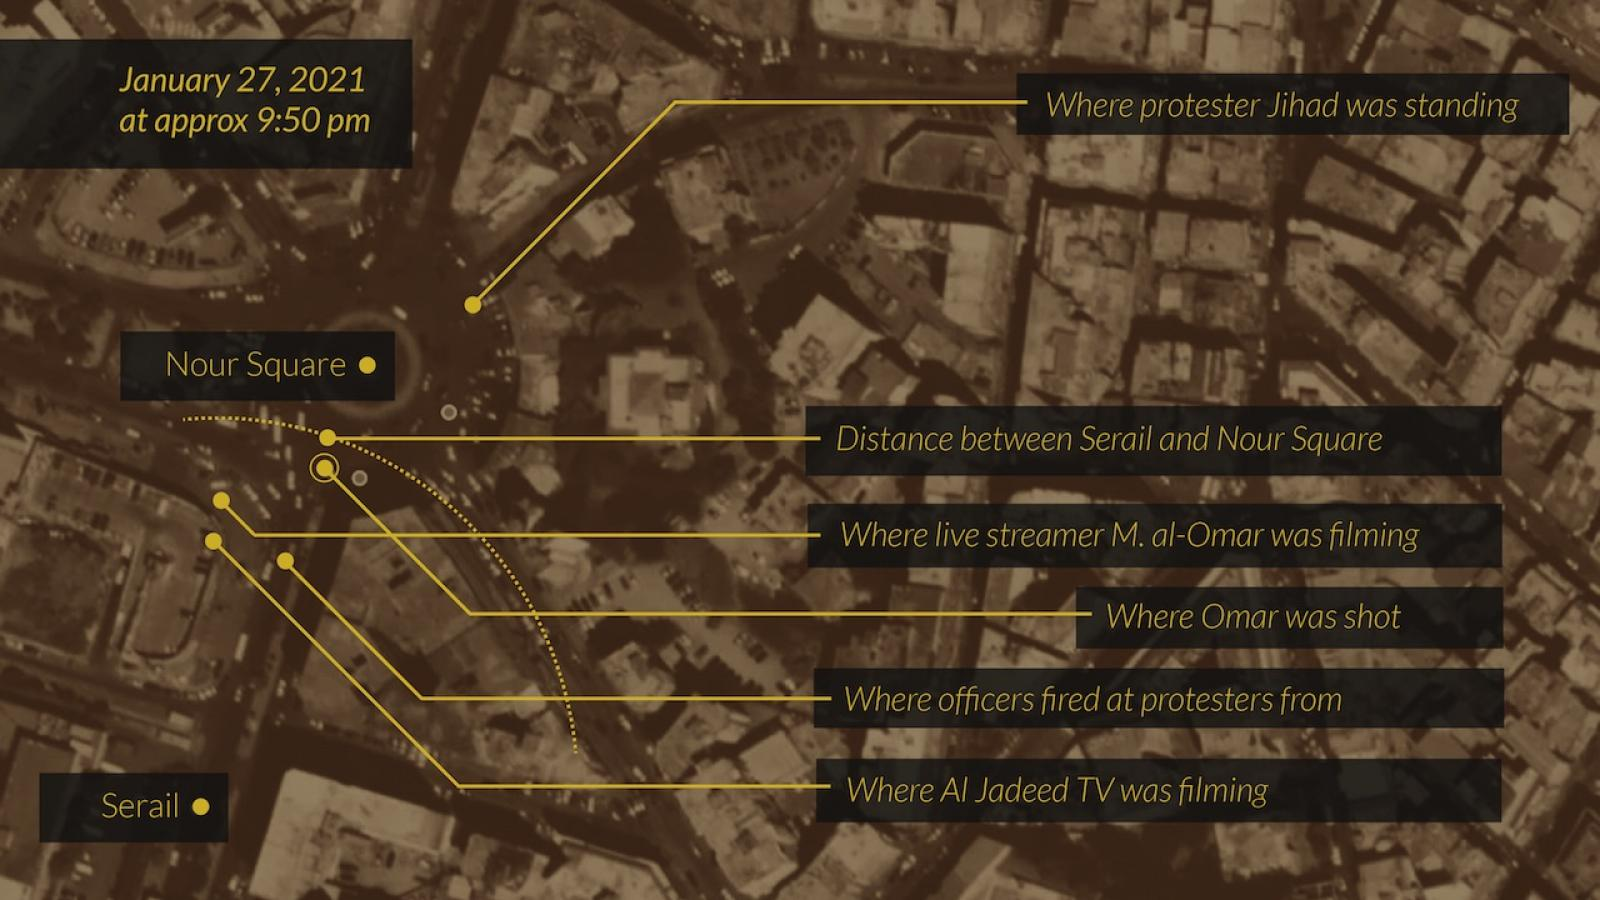 Map of Nour Square, at approximately 9:50 p.m. on the evening of January 27, when security forces fired live ammunition at protesters, showing locations of officers, television crew, a live streamer, and where eyewitnesses believe Omar was shot.